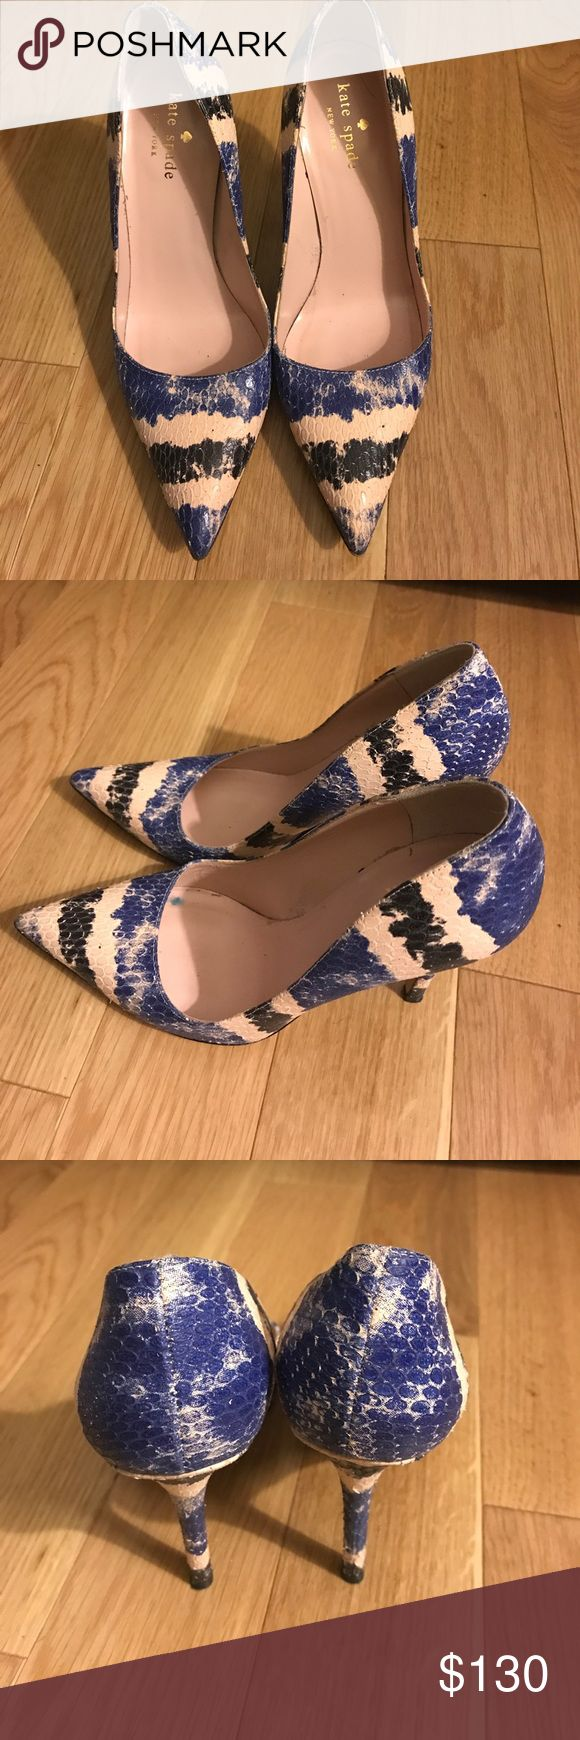 Kate Spade New York 4 inch leather heels size 6 B. Beautiful pair of Kate Spade stilettos.  This is one fun multi colored leather shoe.  The colors in the shoe include blue cream and black. kate spade Shoes Heels